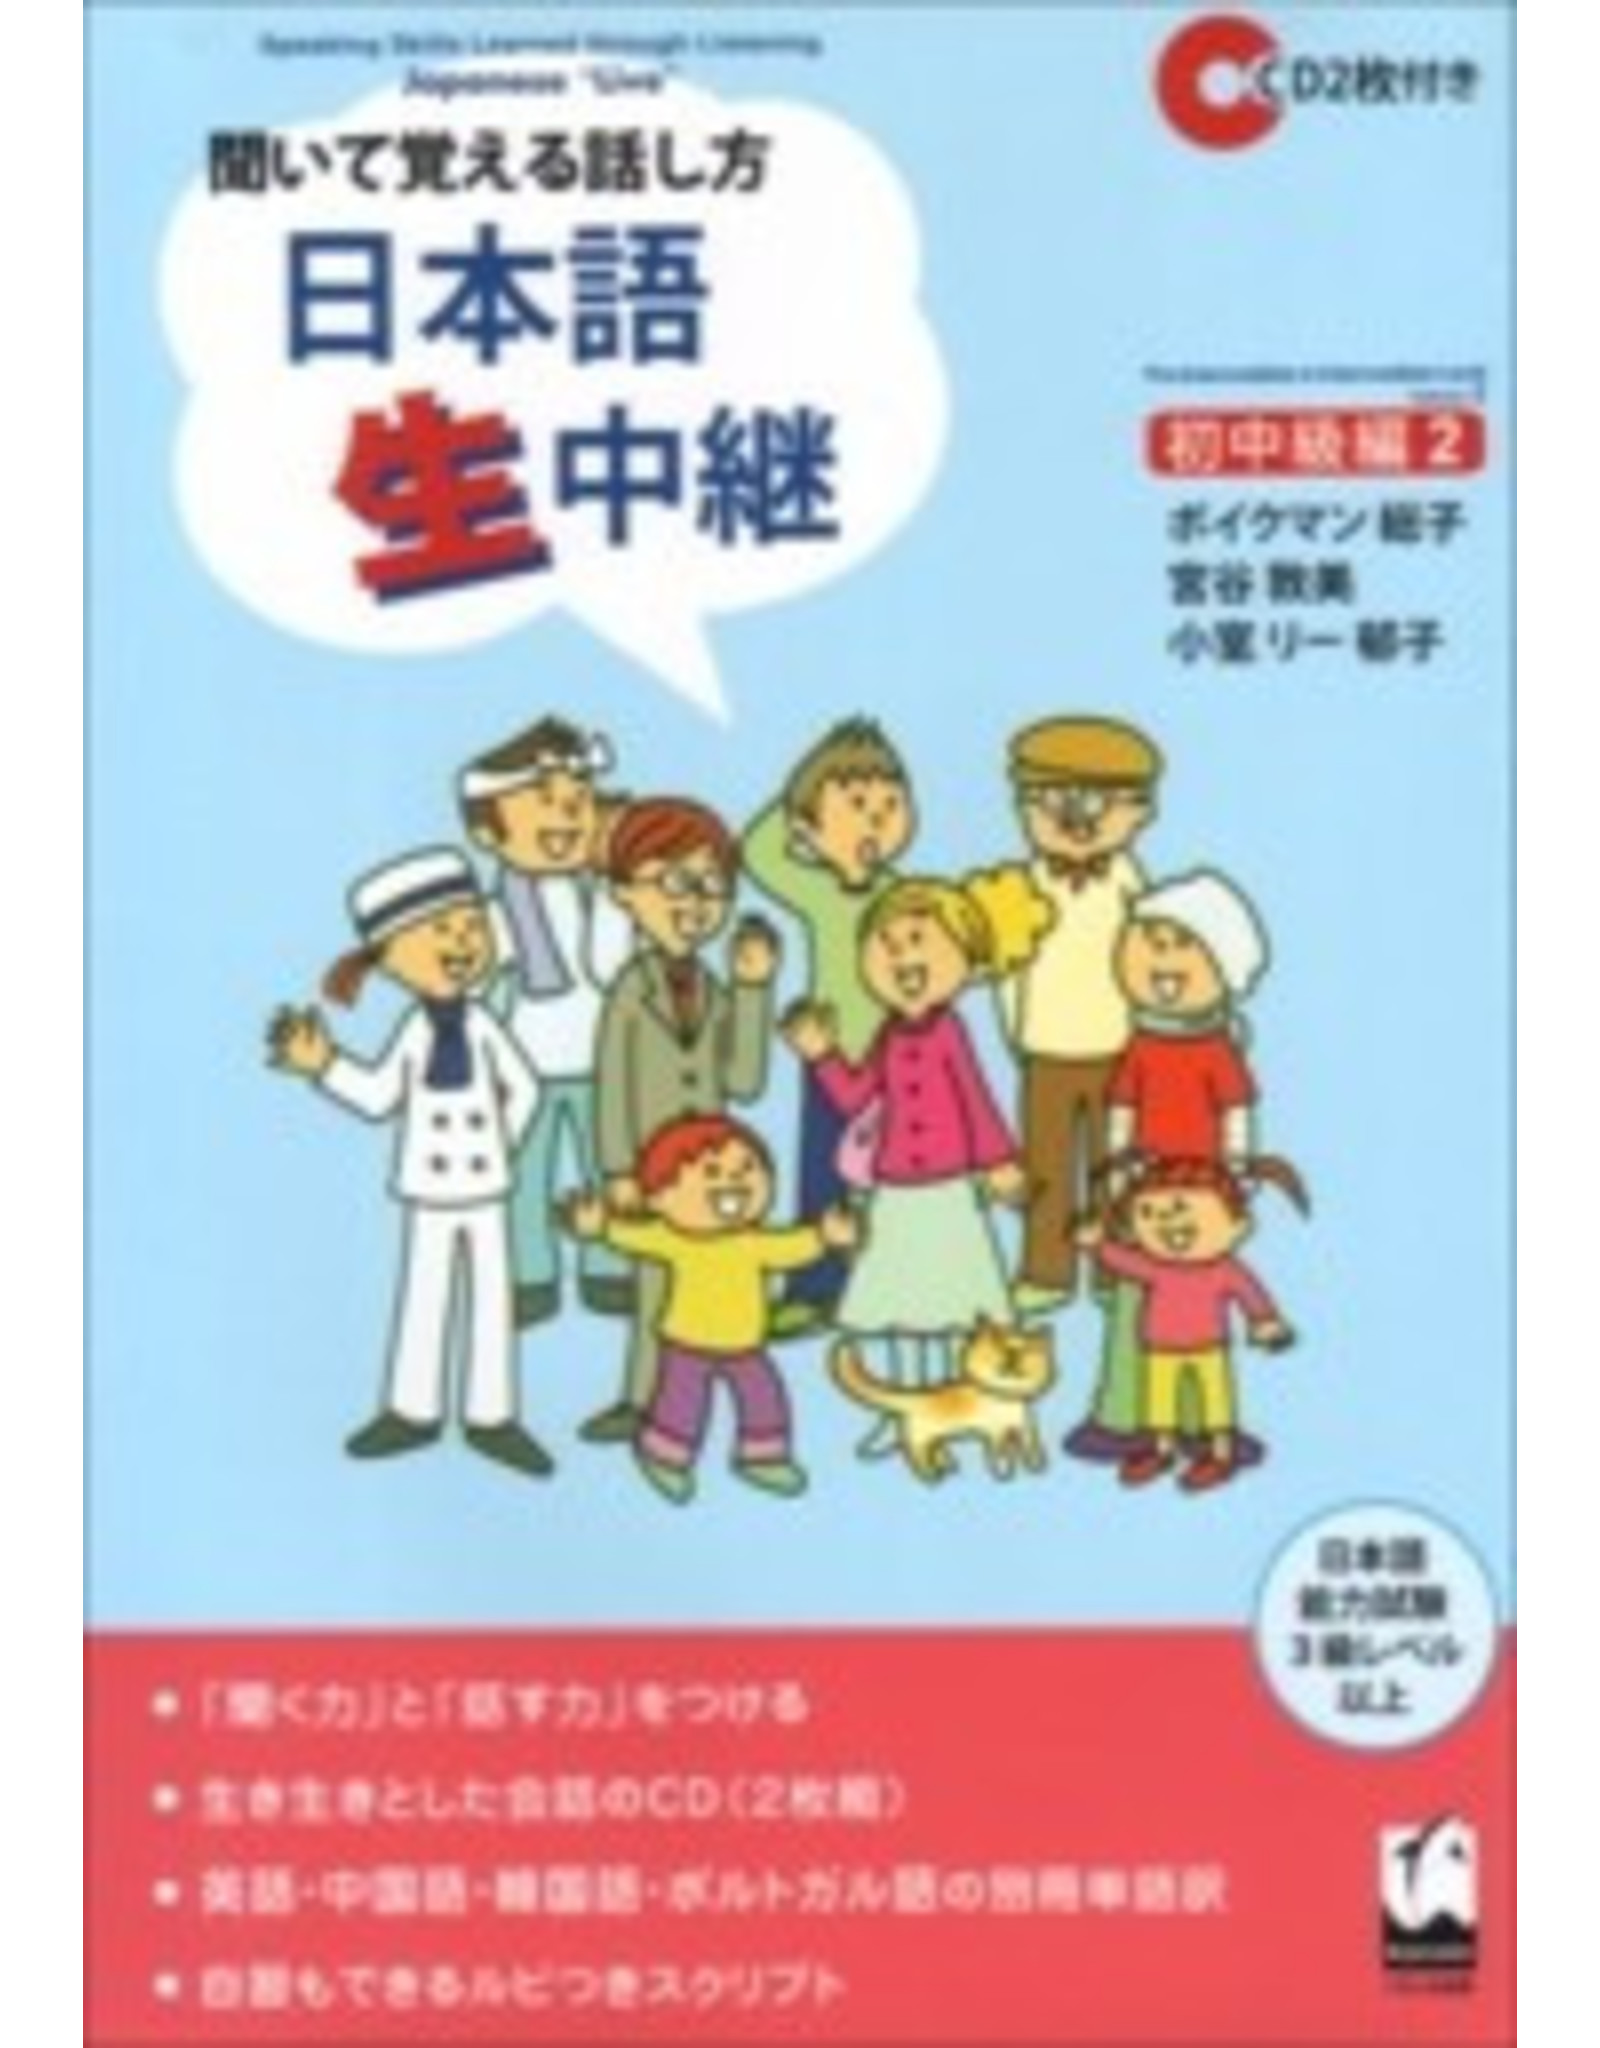 KUROSHIO NIHONGO NAMA CHUKEI W/CD FOR BEGINNERS TO PRE-INTERMEDIATE (2)